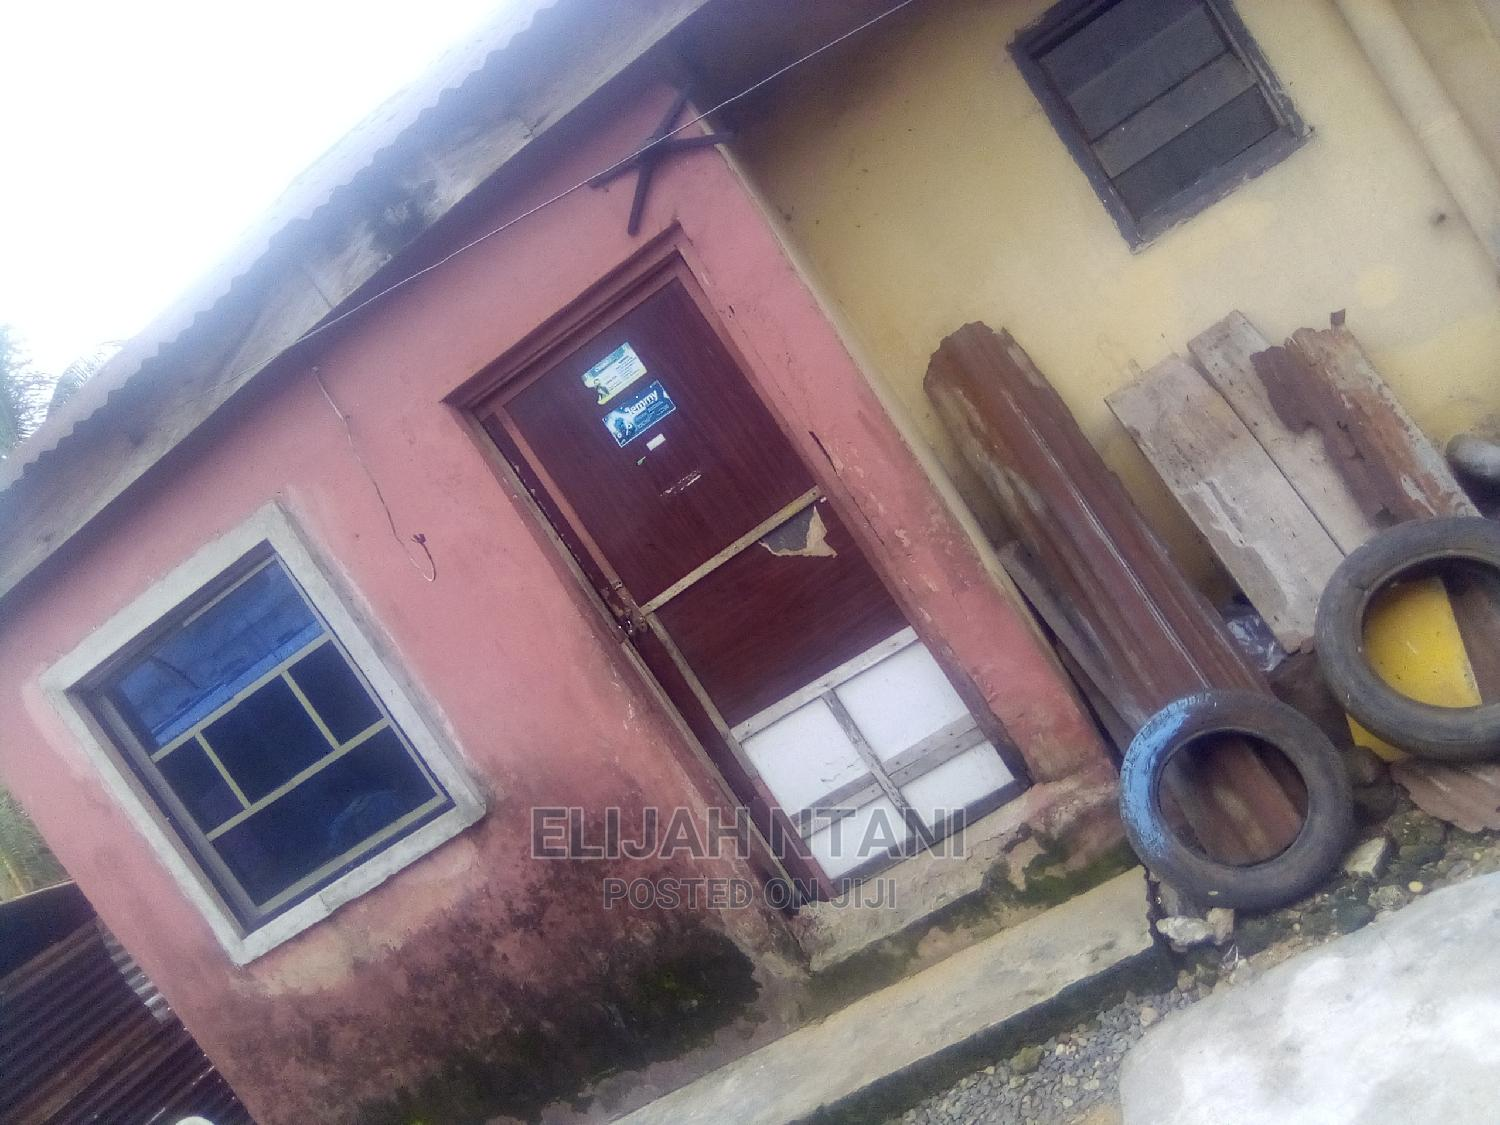 7bdrm Bungalow in Calabar for Sale | Houses & Apartments For Sale for sale in Calabar, Cross River State, Nigeria